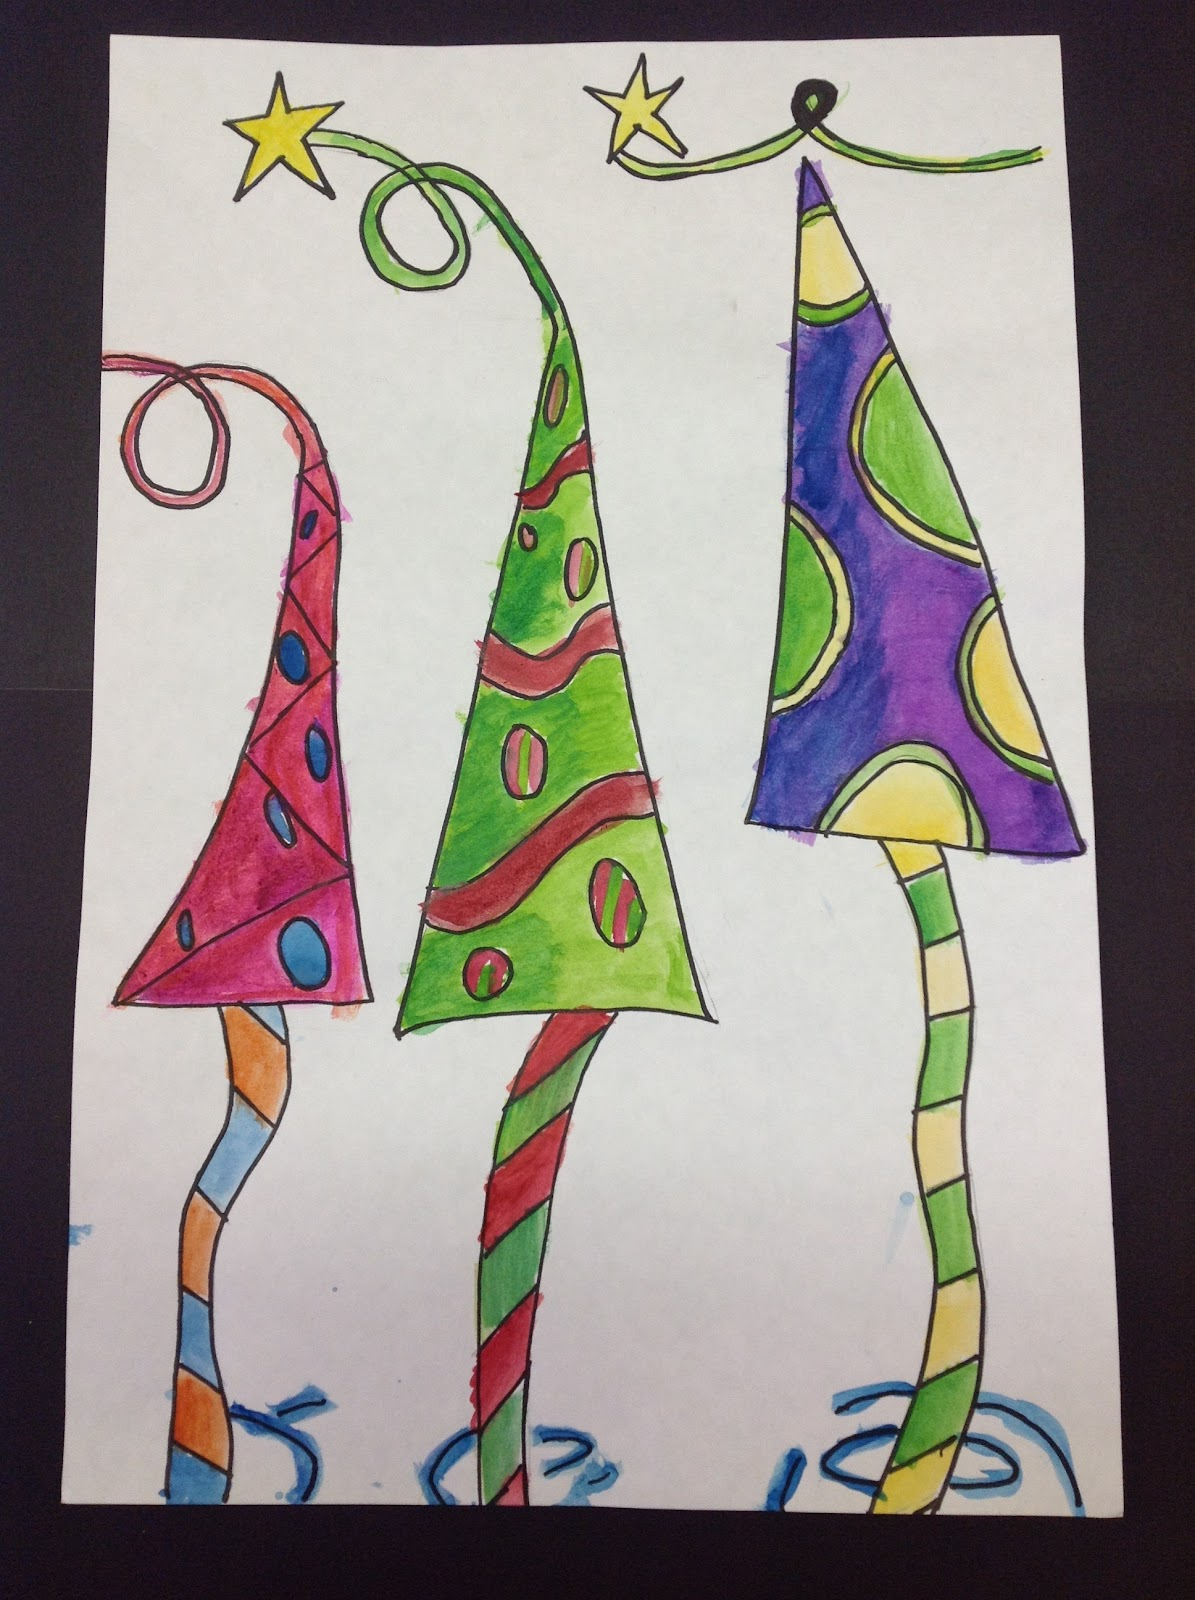 color it like you mean it 5th grade 39 s whimsical trees. Black Bedroom Furniture Sets. Home Design Ideas